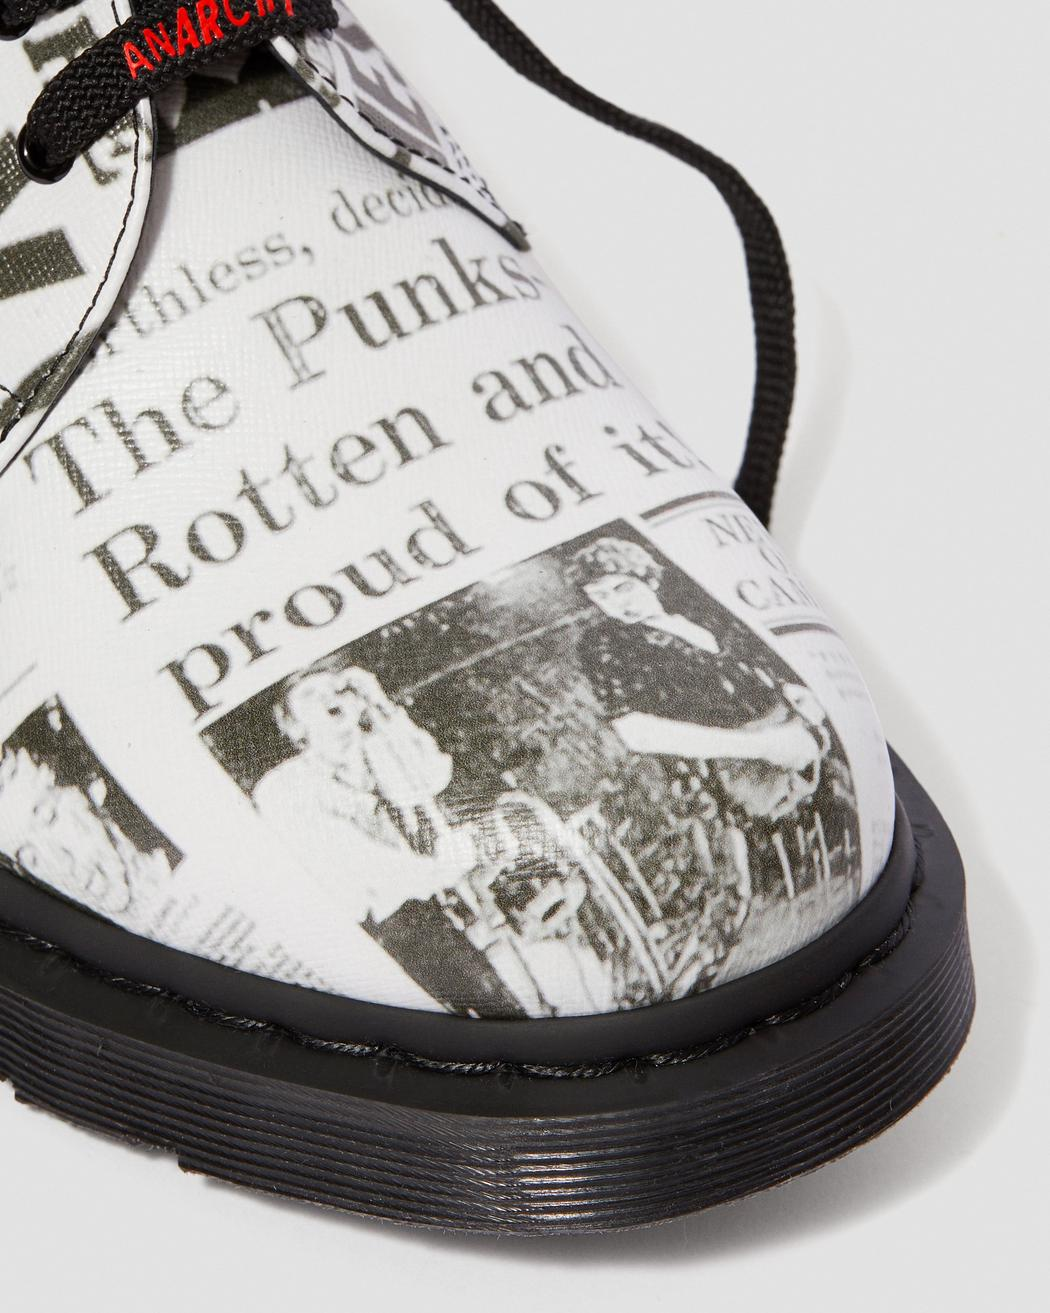 DR MARTENS M'S FOOTWEAR 1461 SEX PISTOLS LEATHER PRINTED OXFORD SHOE